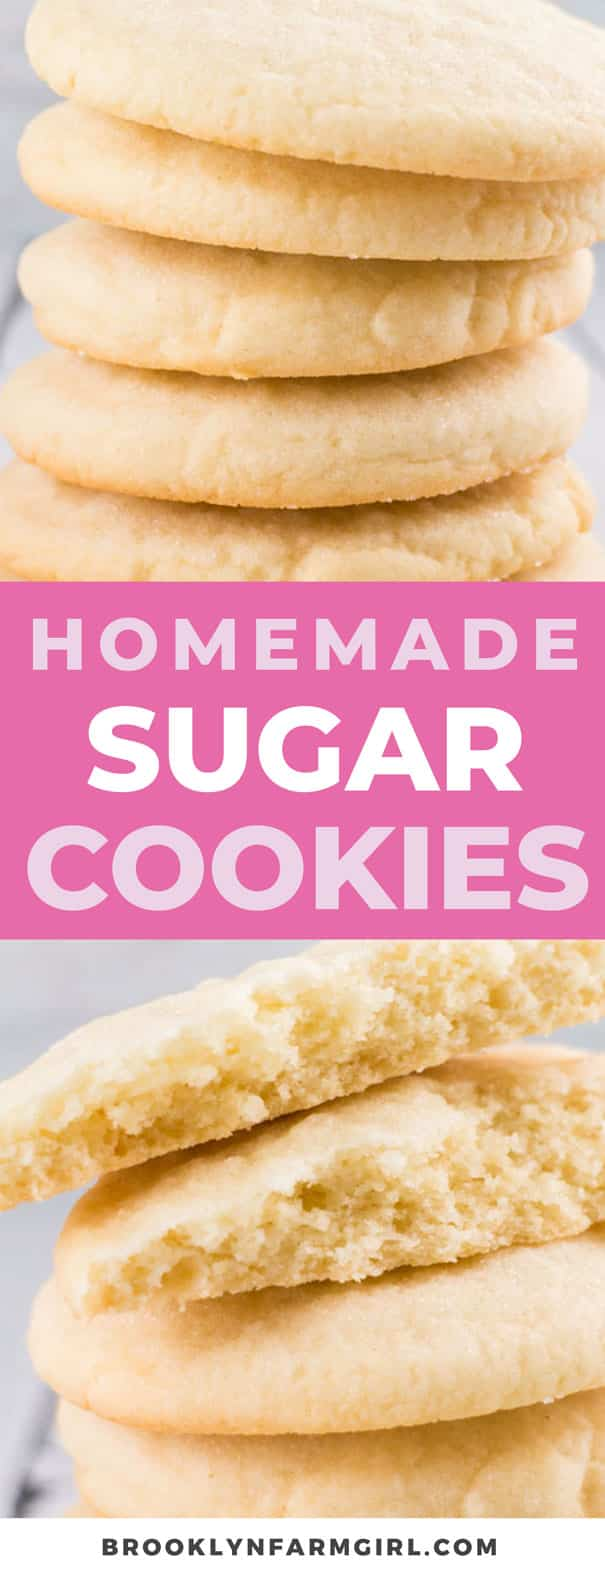 Easy to make homemade sugar cookies that are only 51 calories each.  This simple recipe makes light and airy sugar cookies, perfect for dessert and Christmas cookies!